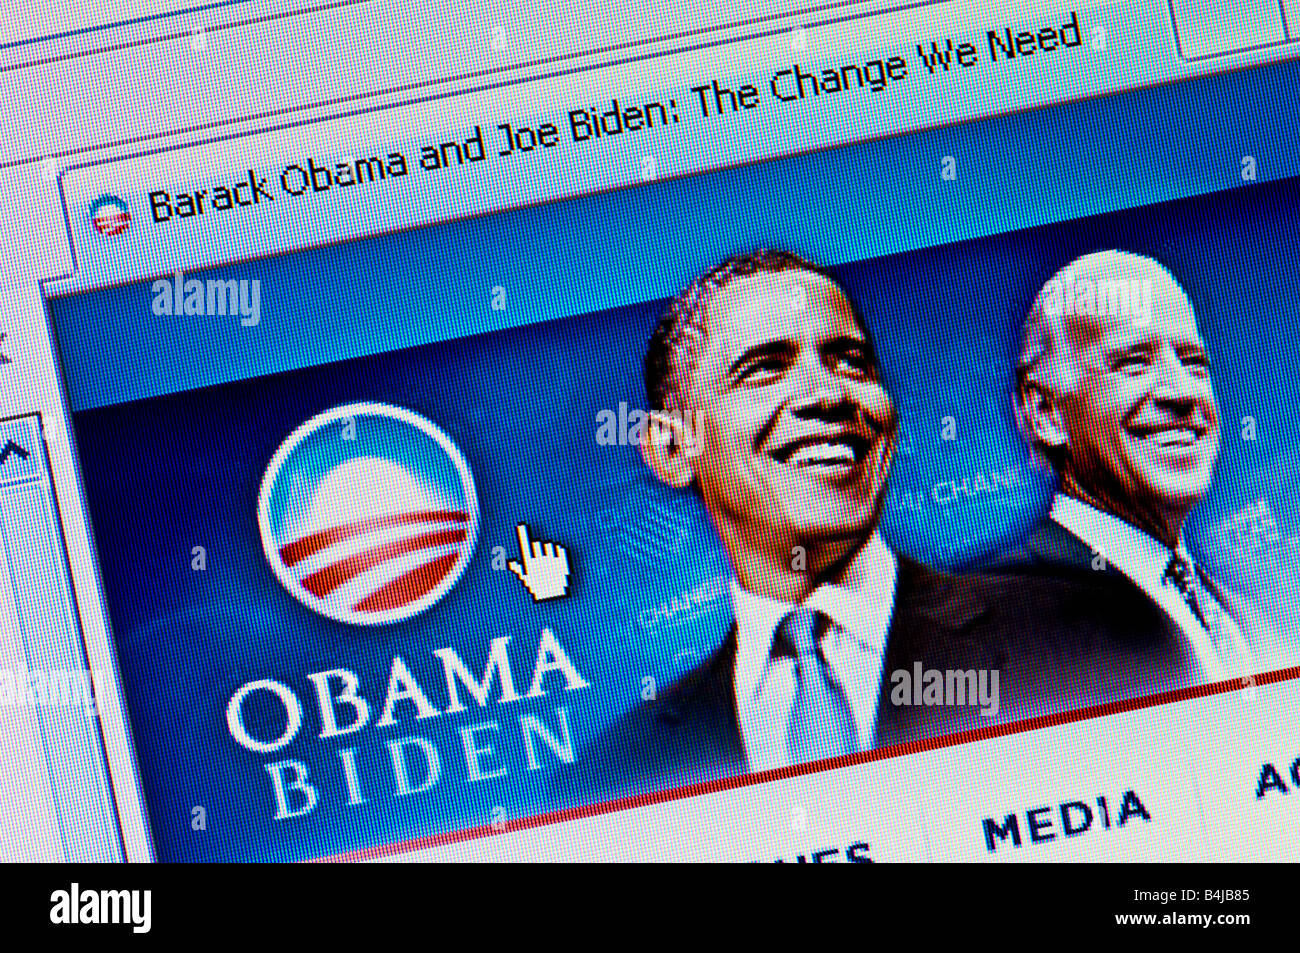 Macro screenshot of Barack Obama and Joe Biden 2008 US Presidential Campaign website (Editorial use only) - Stock Image